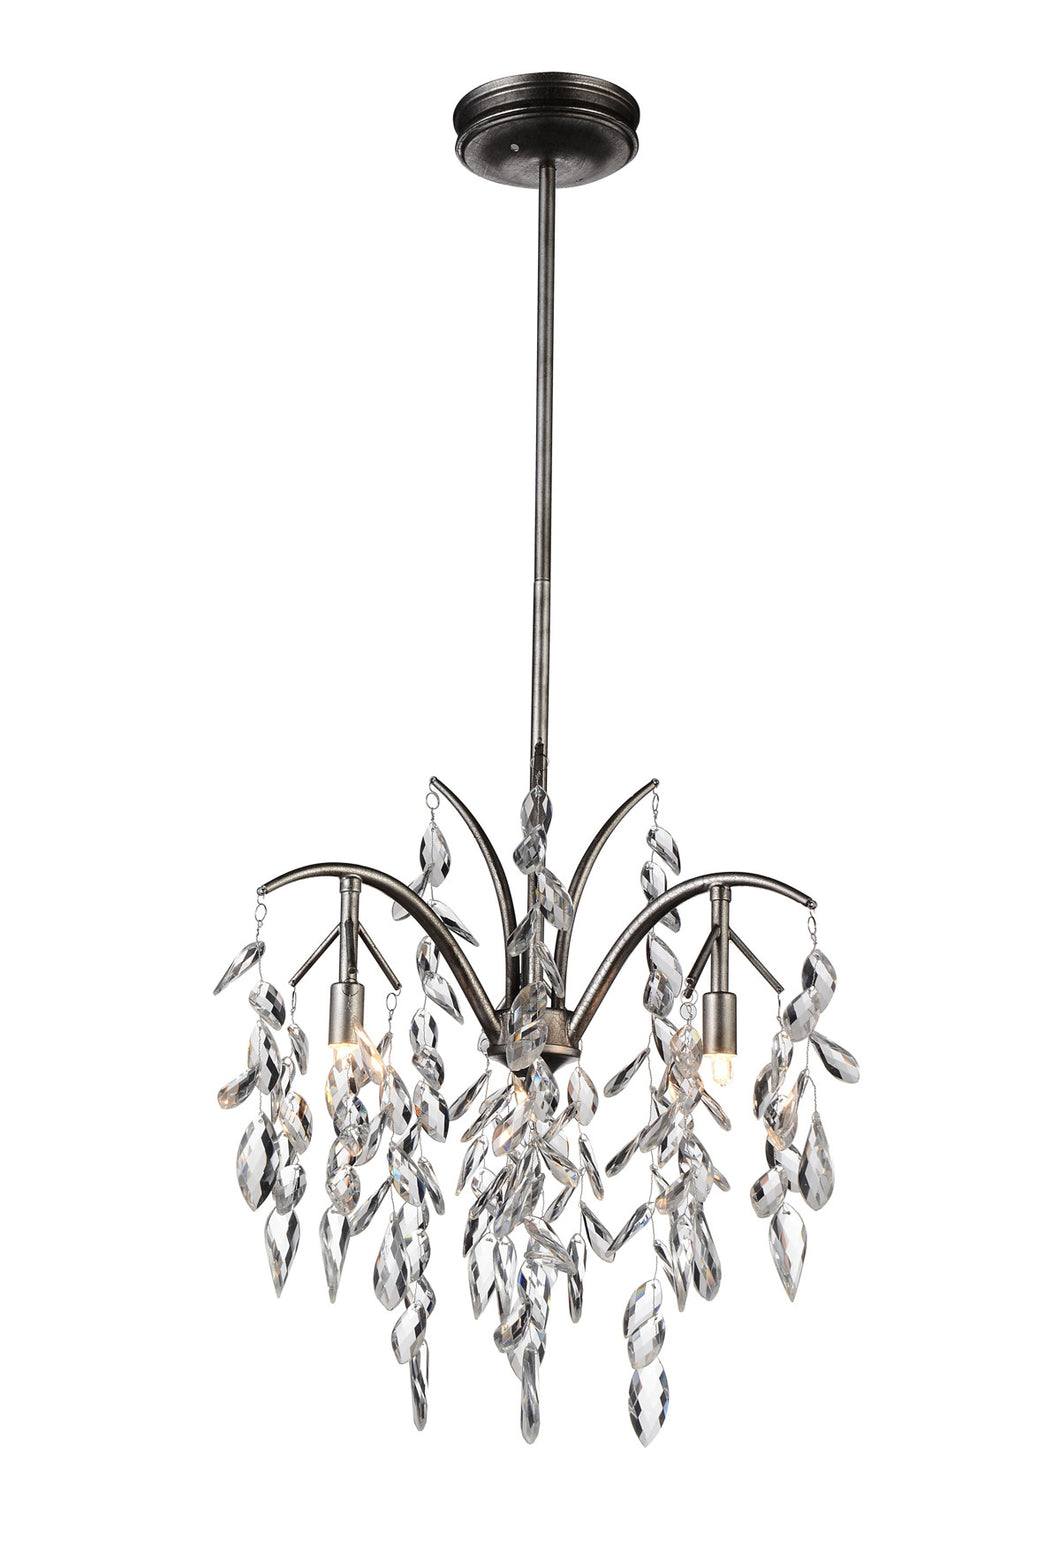 3 Light Down Chandelier with Silver Mist finish